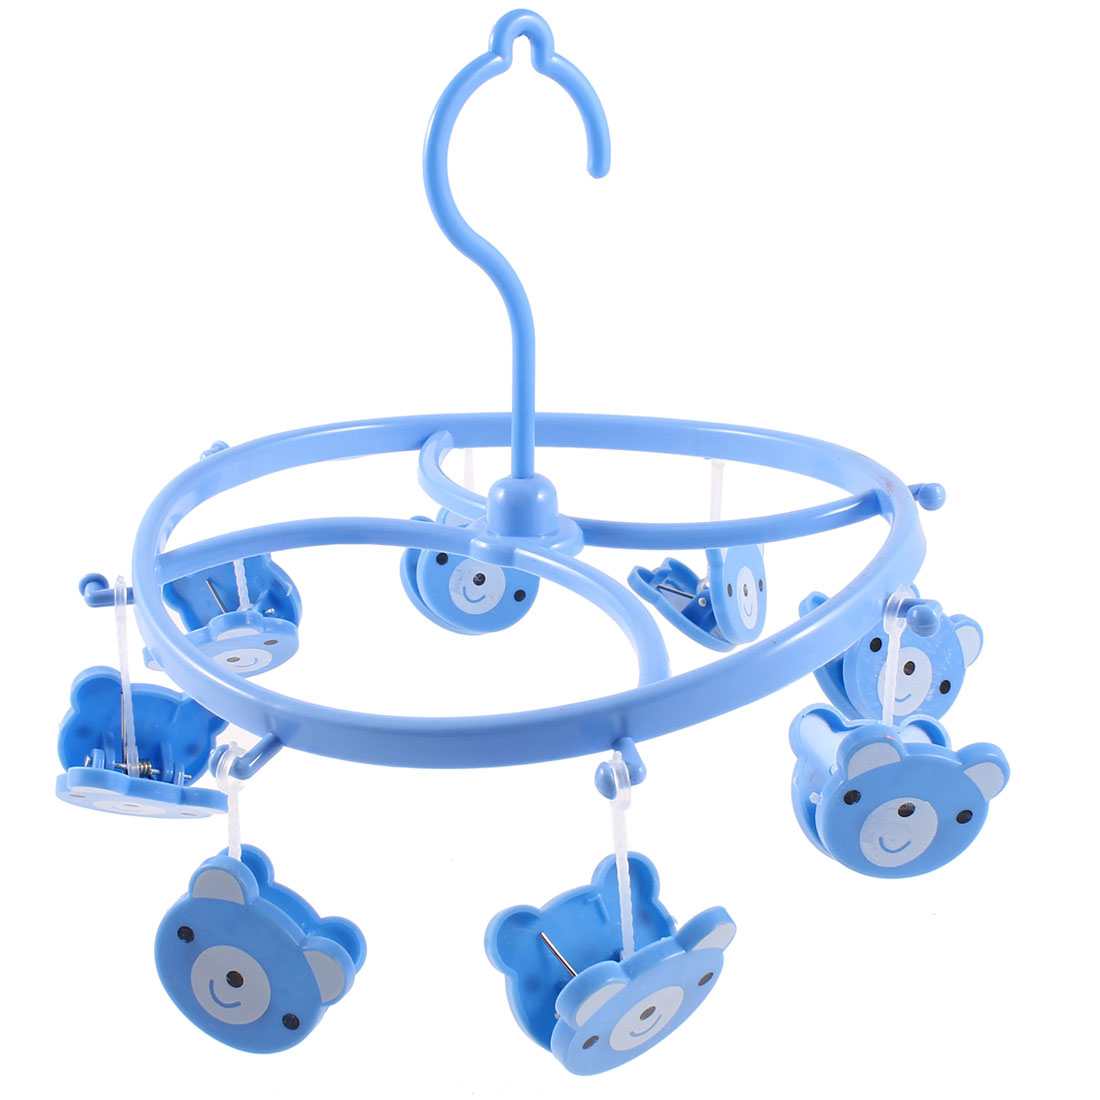 Household Blue Cartoon Piggy Print Clothing Drying Clips Clamps Hook Rack